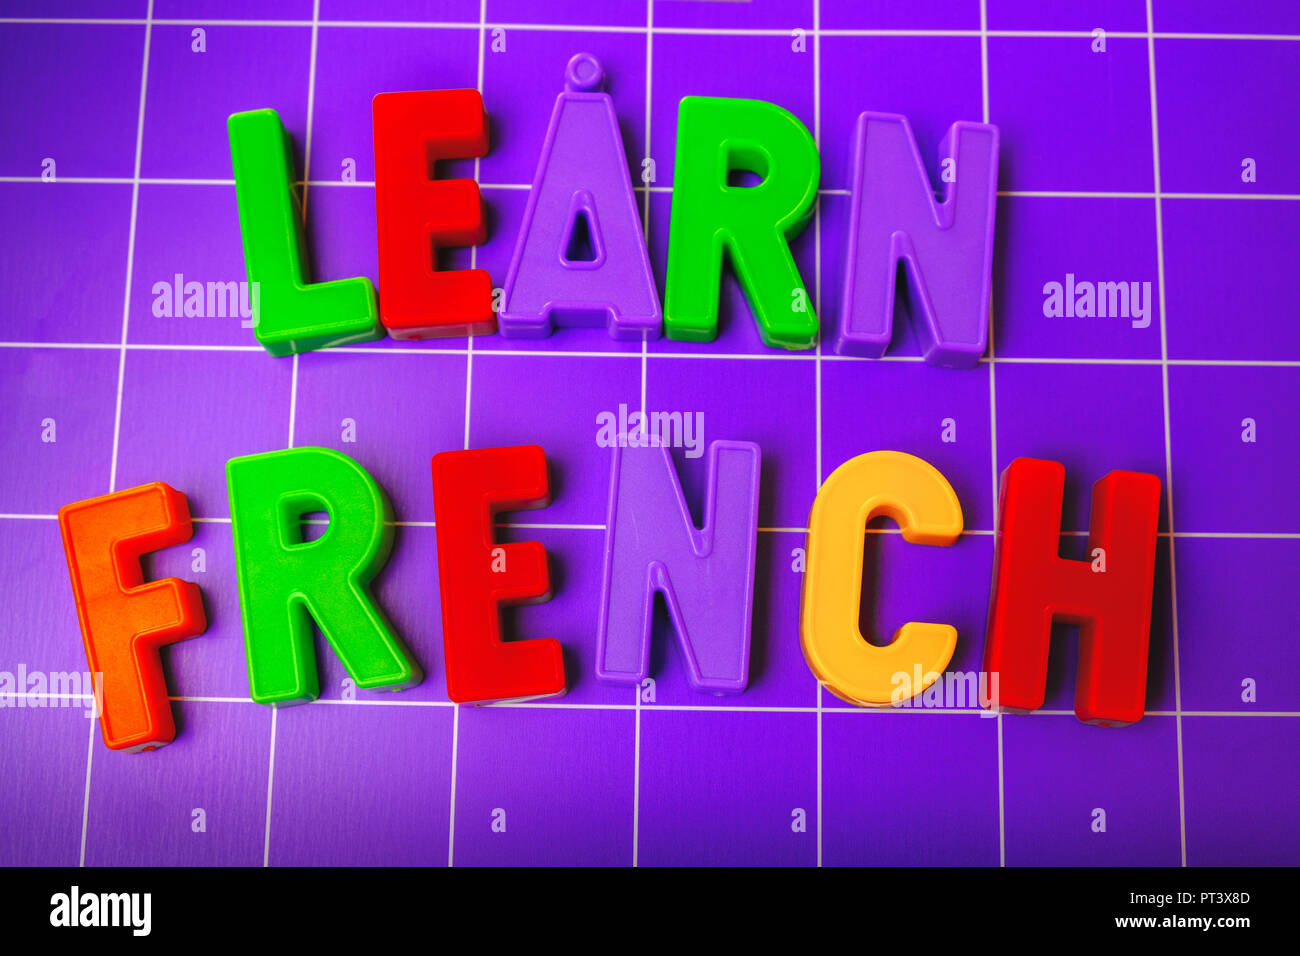 learn french language alphabet on magnets letters - Stock Image